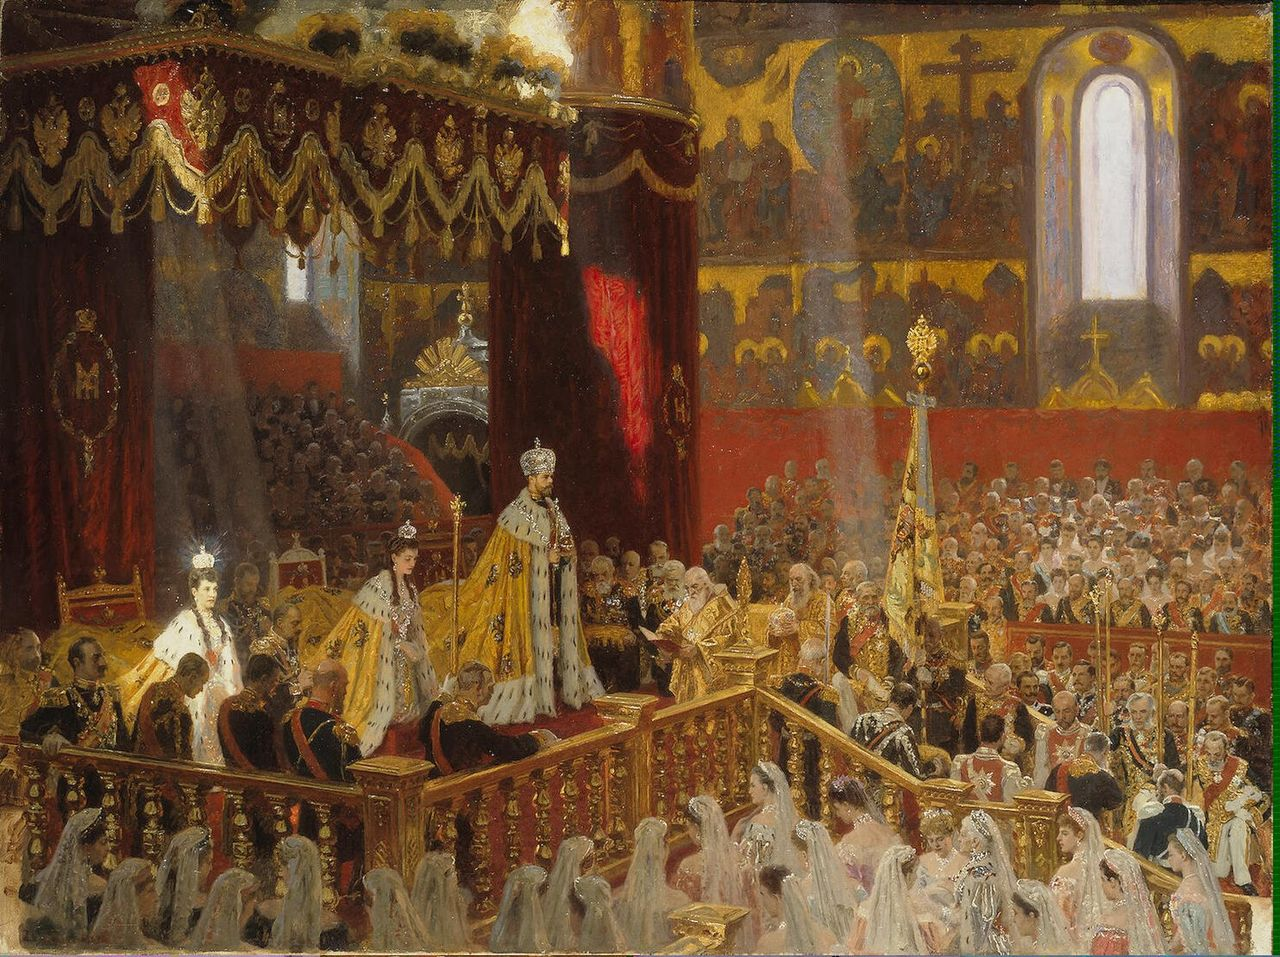 Coronation of Nicholas II and Alexandra Fyodorovna by Laurits Tuxen, 1898